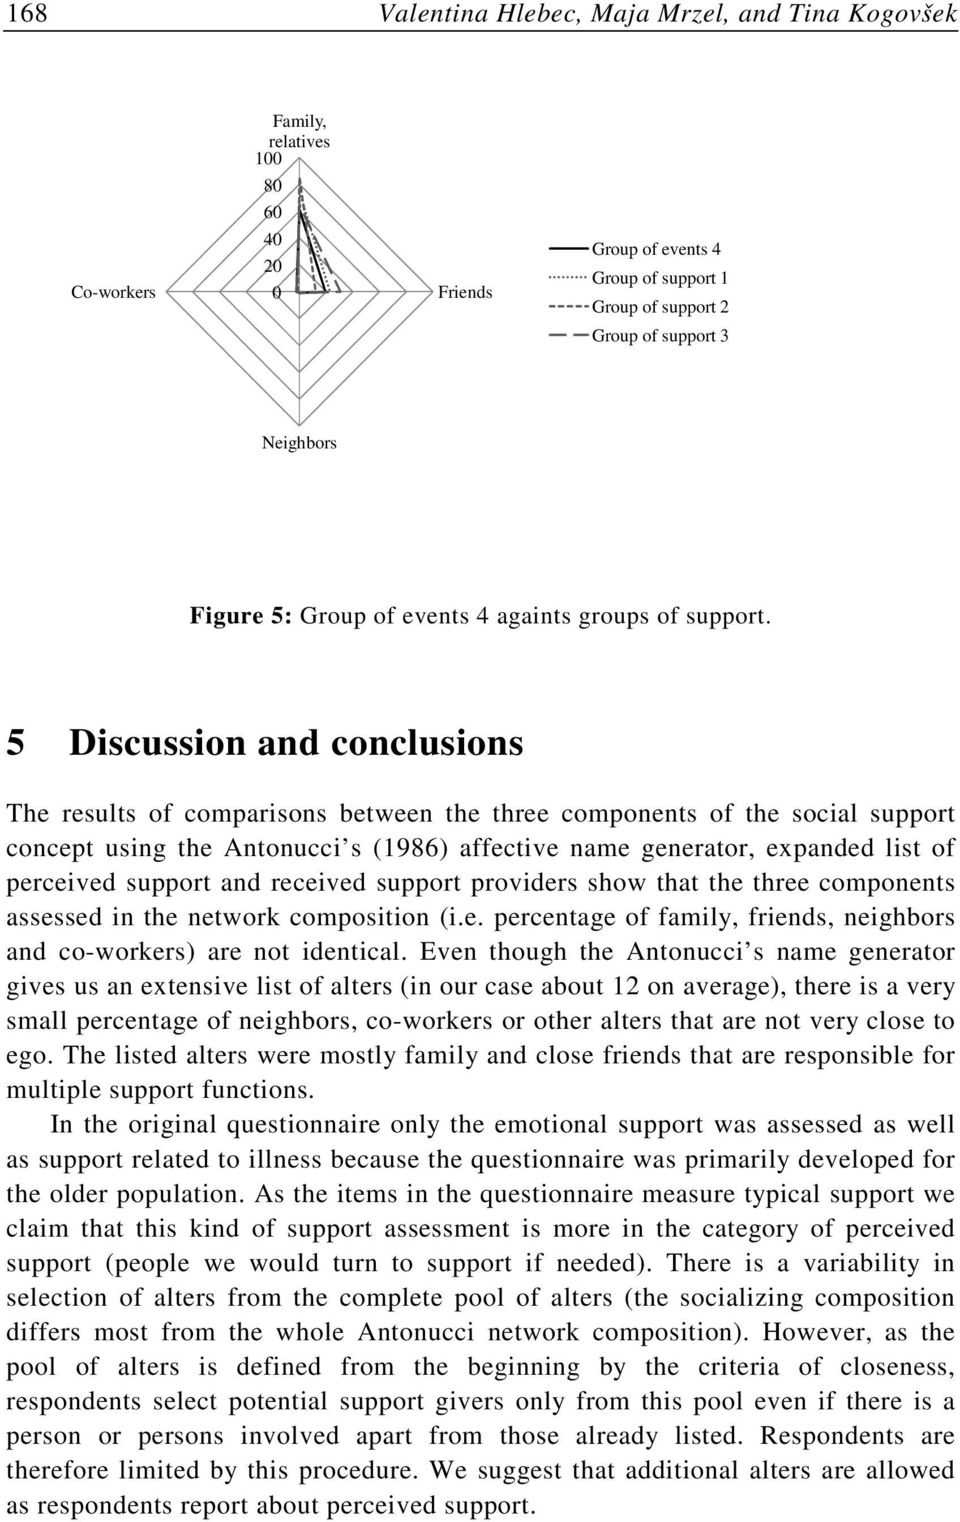 5 Discussion and conclusions The results of comparisons between the three components of the social support concept using the Antonucci s (1986) affective name generator, expanded list of perceived